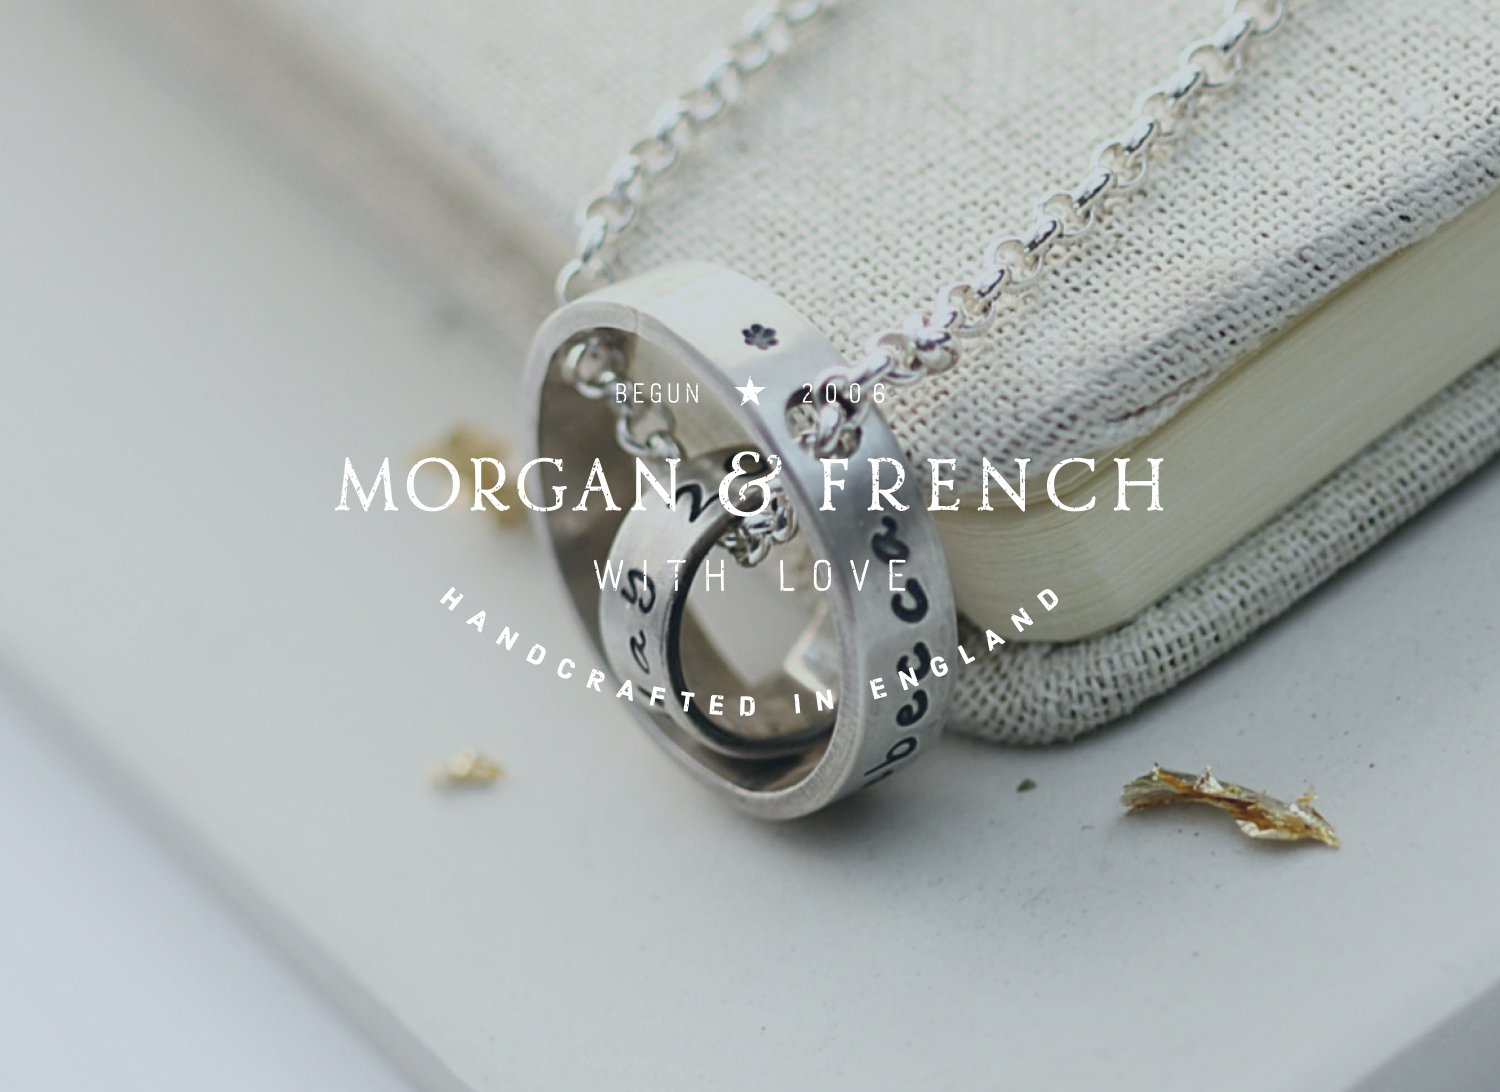 Morgan and French logo design, branding, brand styling by Ditto Creative, brand stylists London